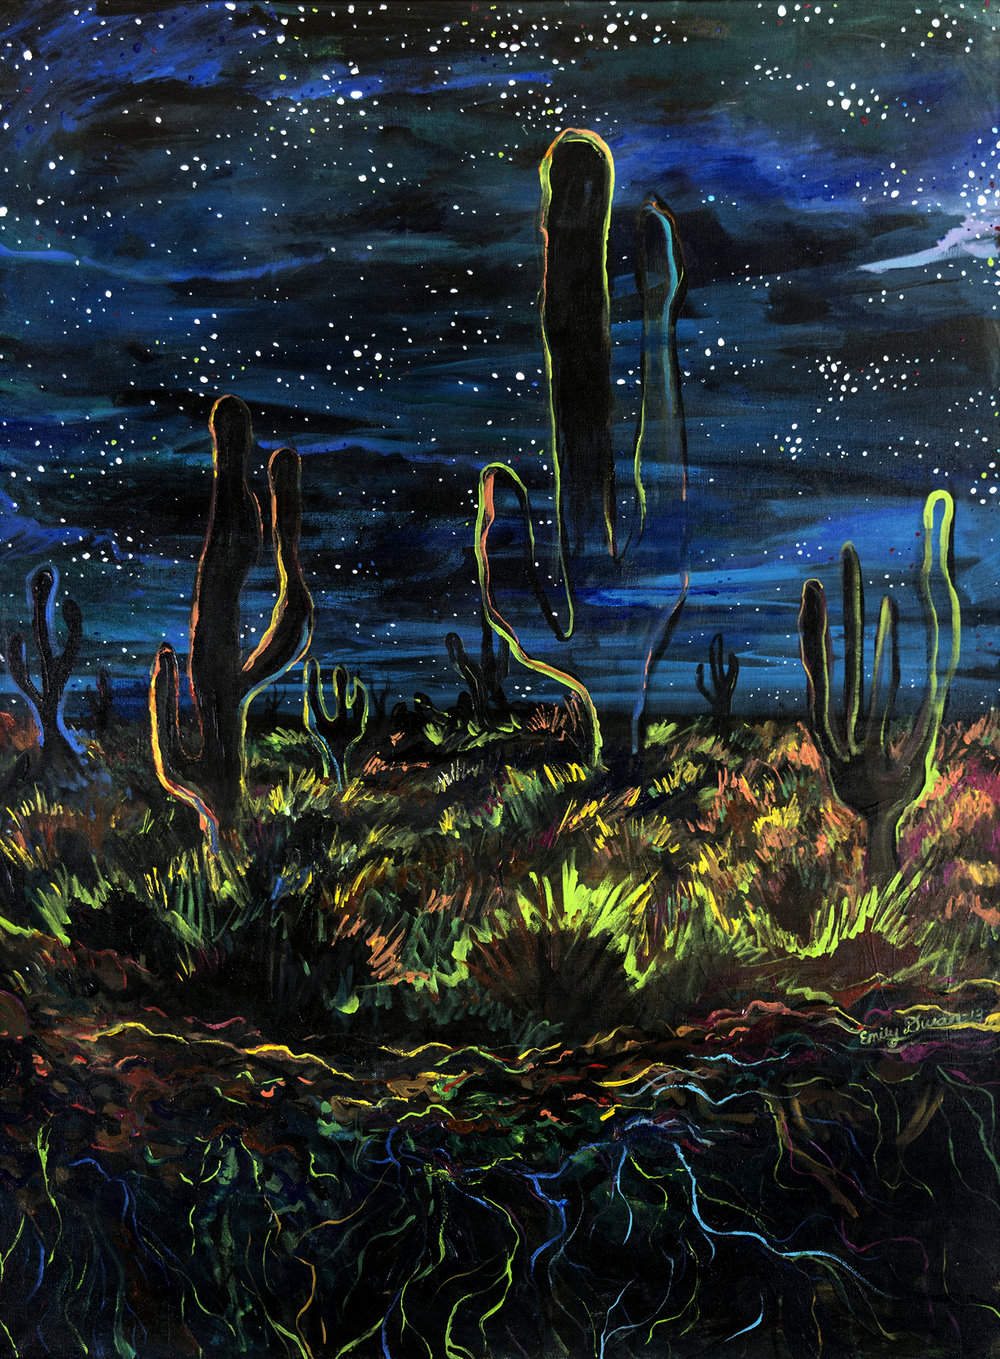 CACTUS DREAM acrylic on canvas